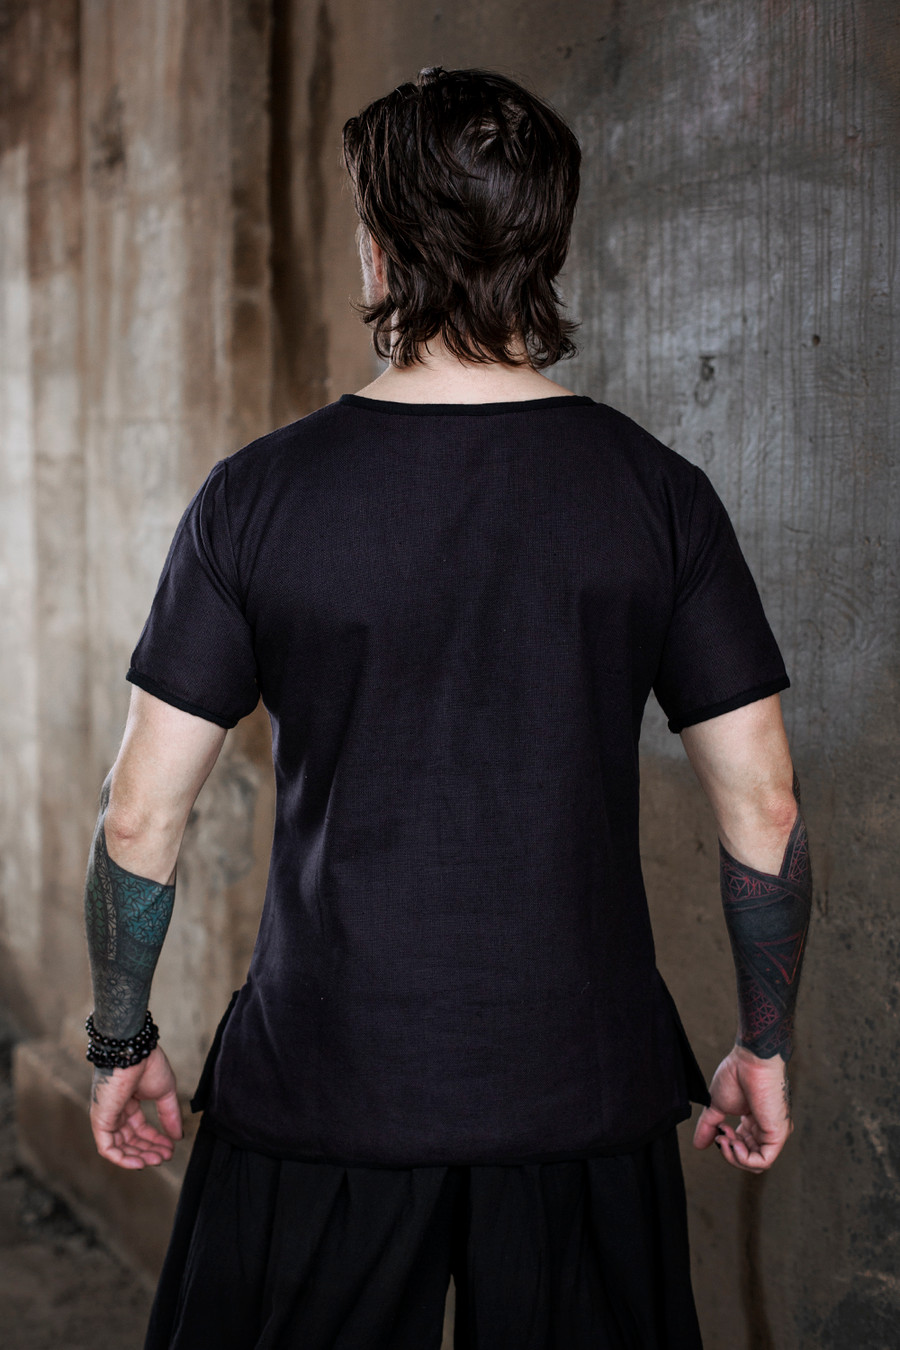 Puncture Resistant Armor Tee